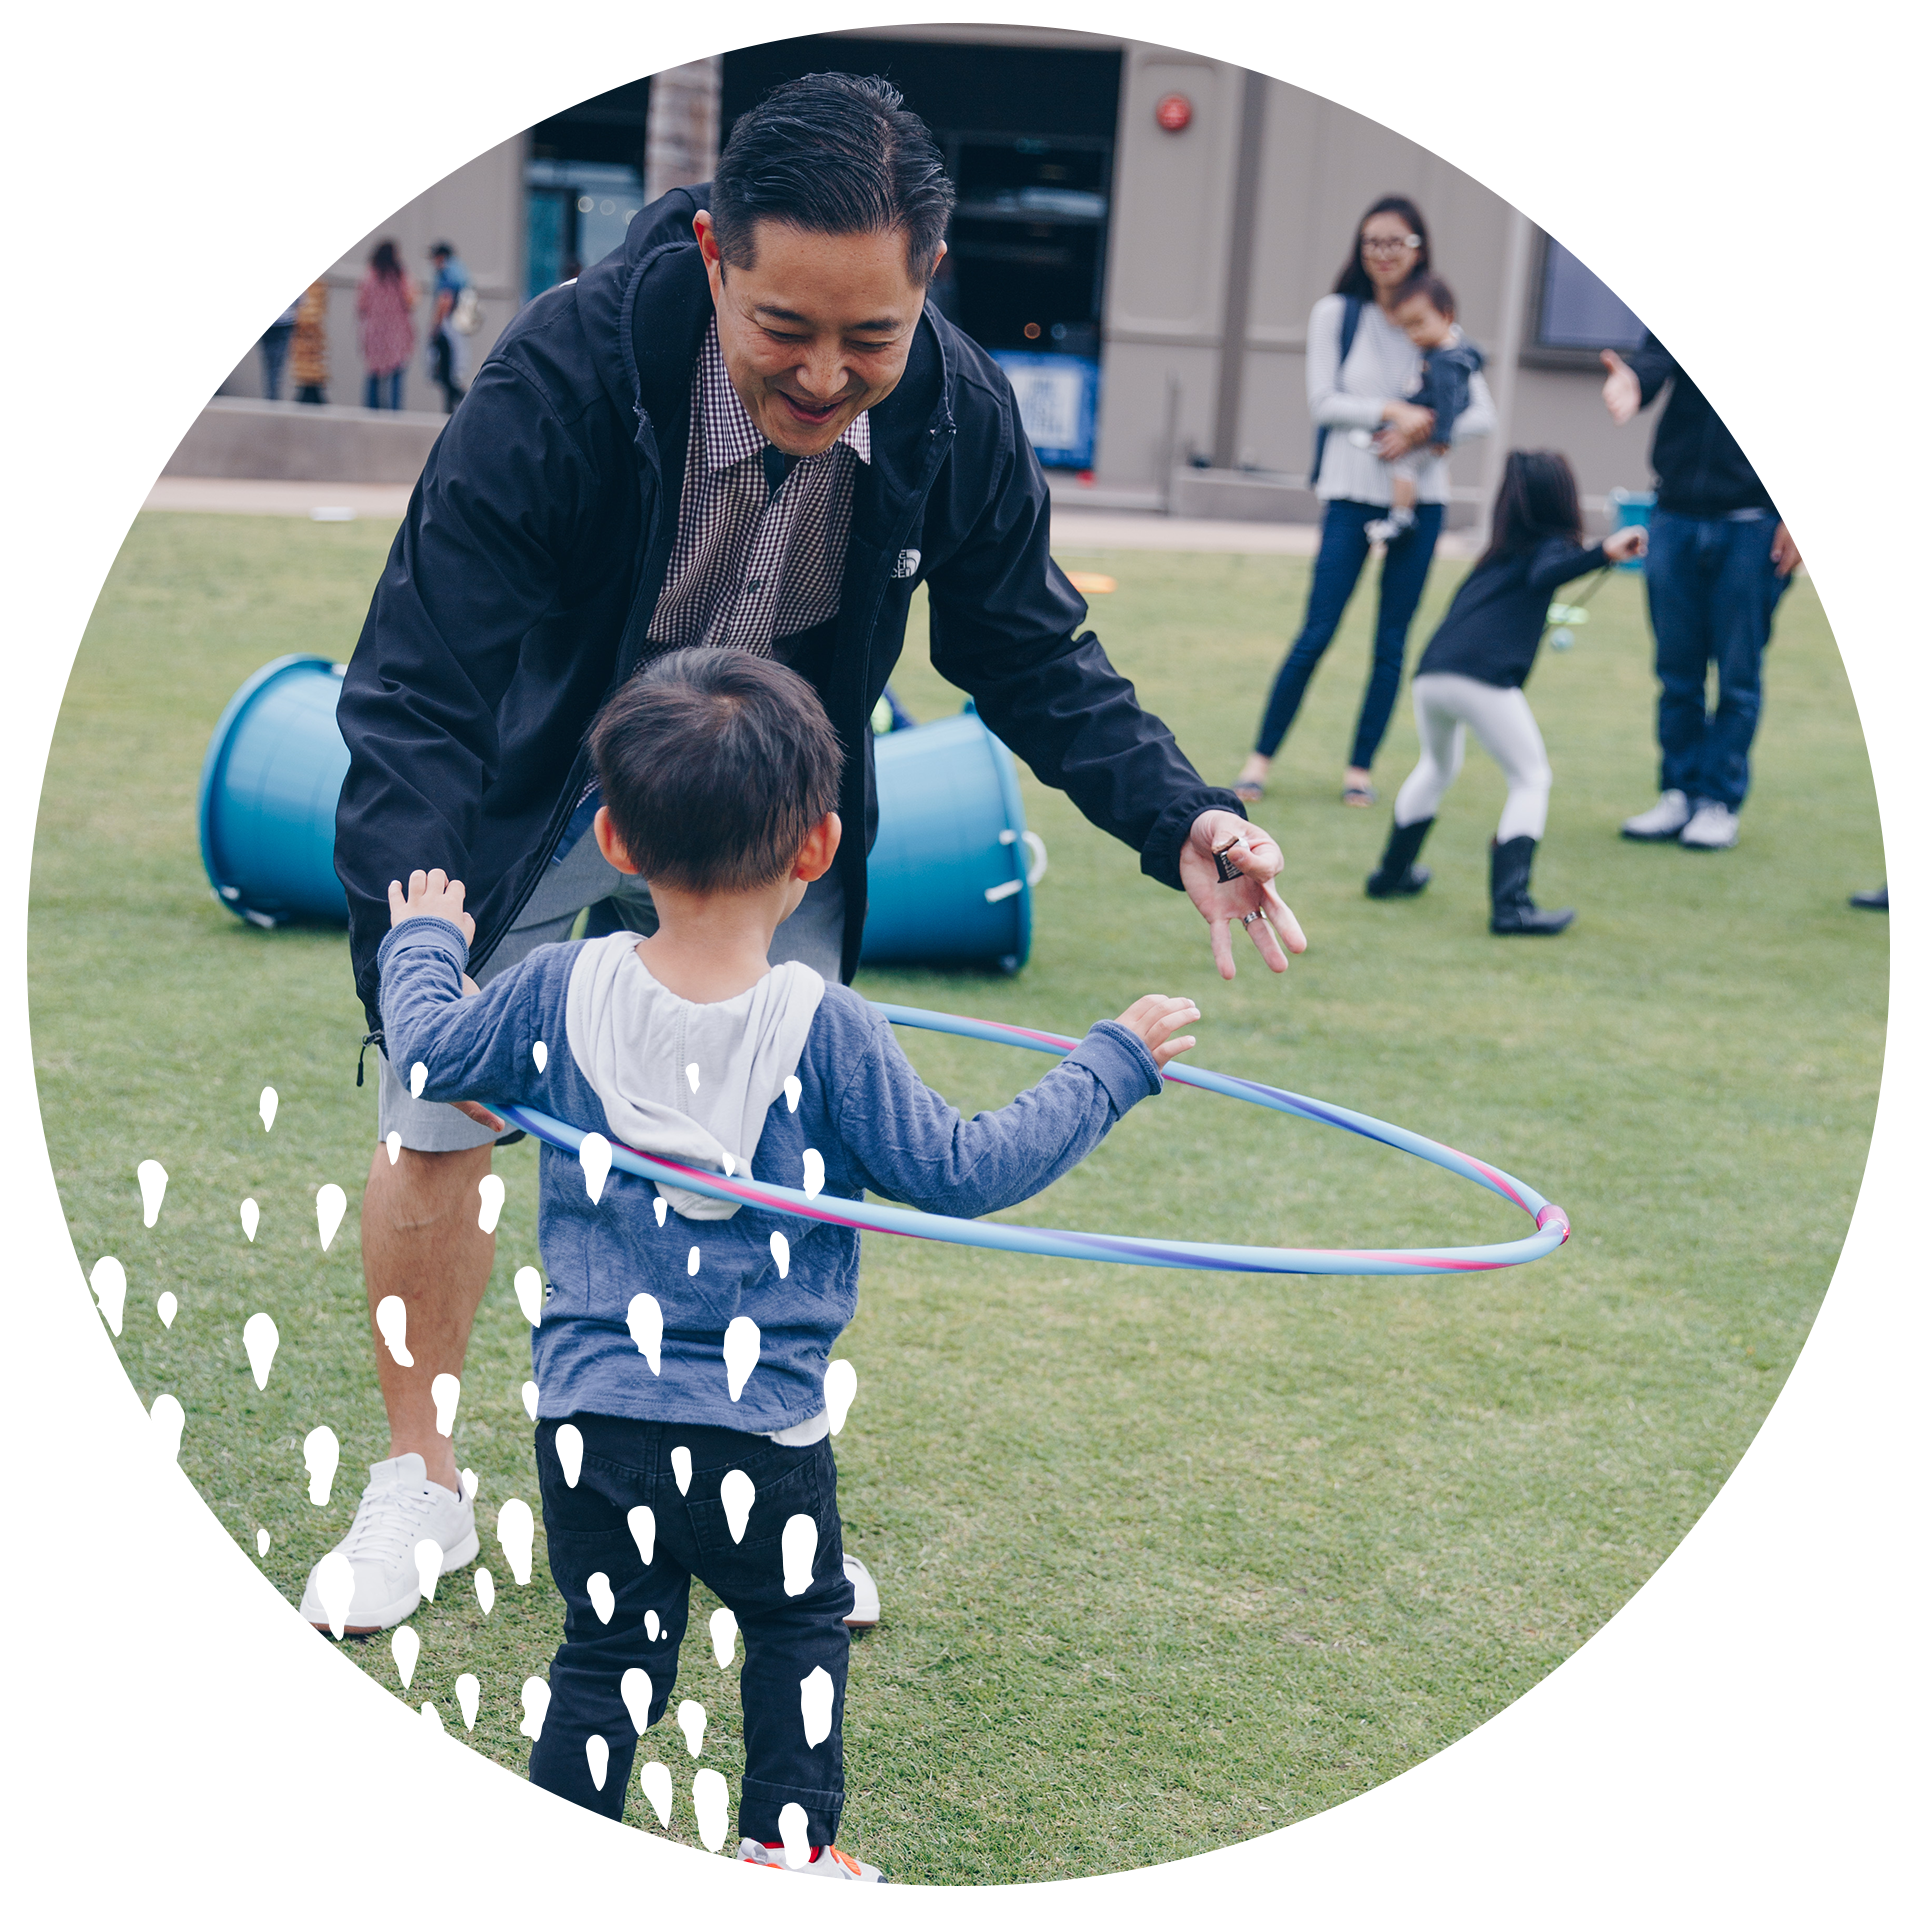 Summer On The Lawn - All summer after services hang out with your kids on the plaza -the lawn is filled with balls, corn hole, frisbees, and more, making this a place the whole family can enjoy.